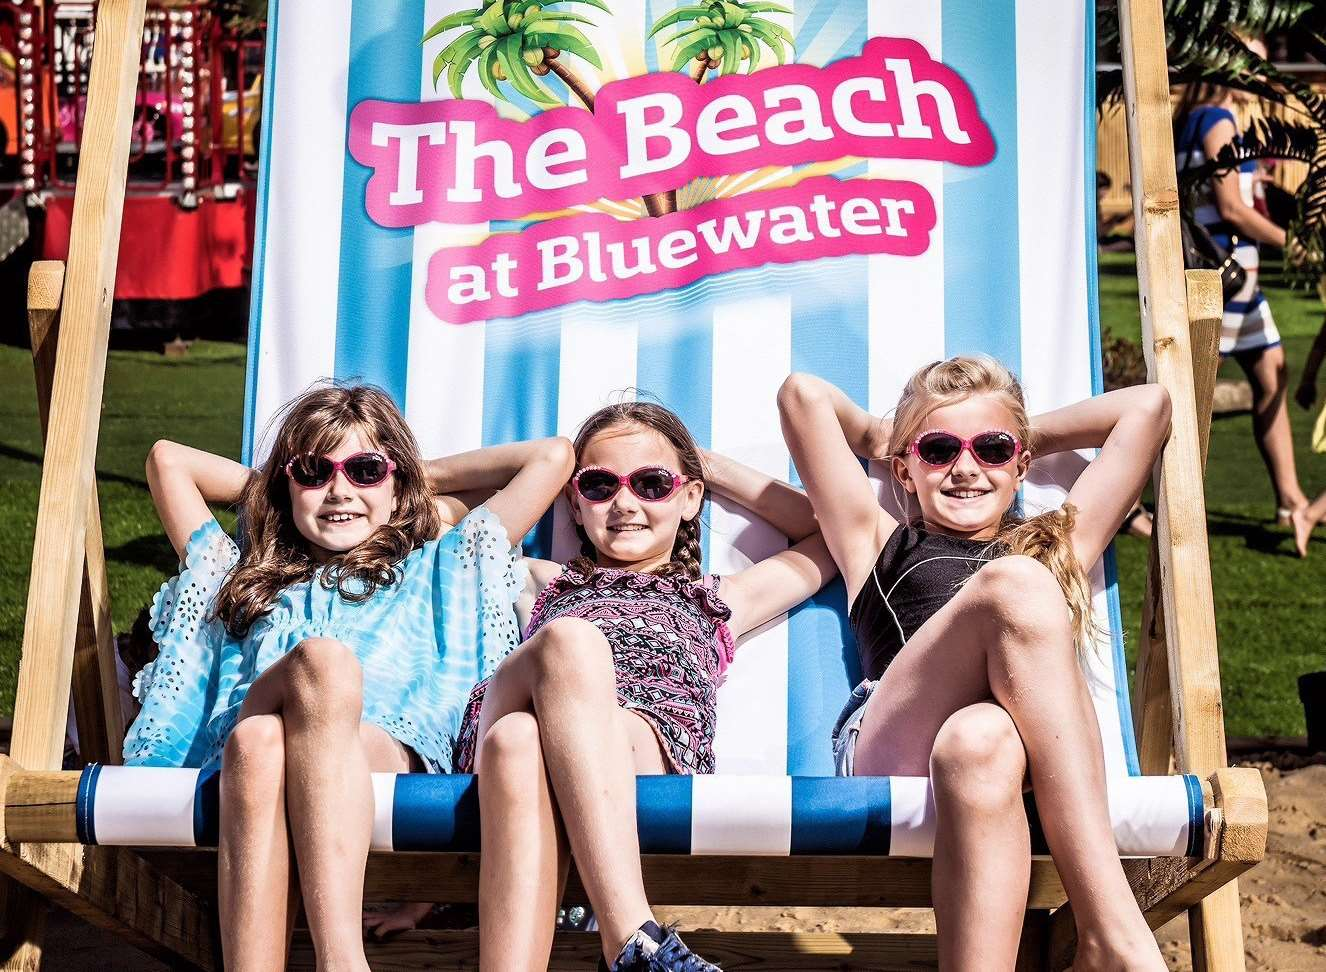 The Beach is at Bluewater this summer